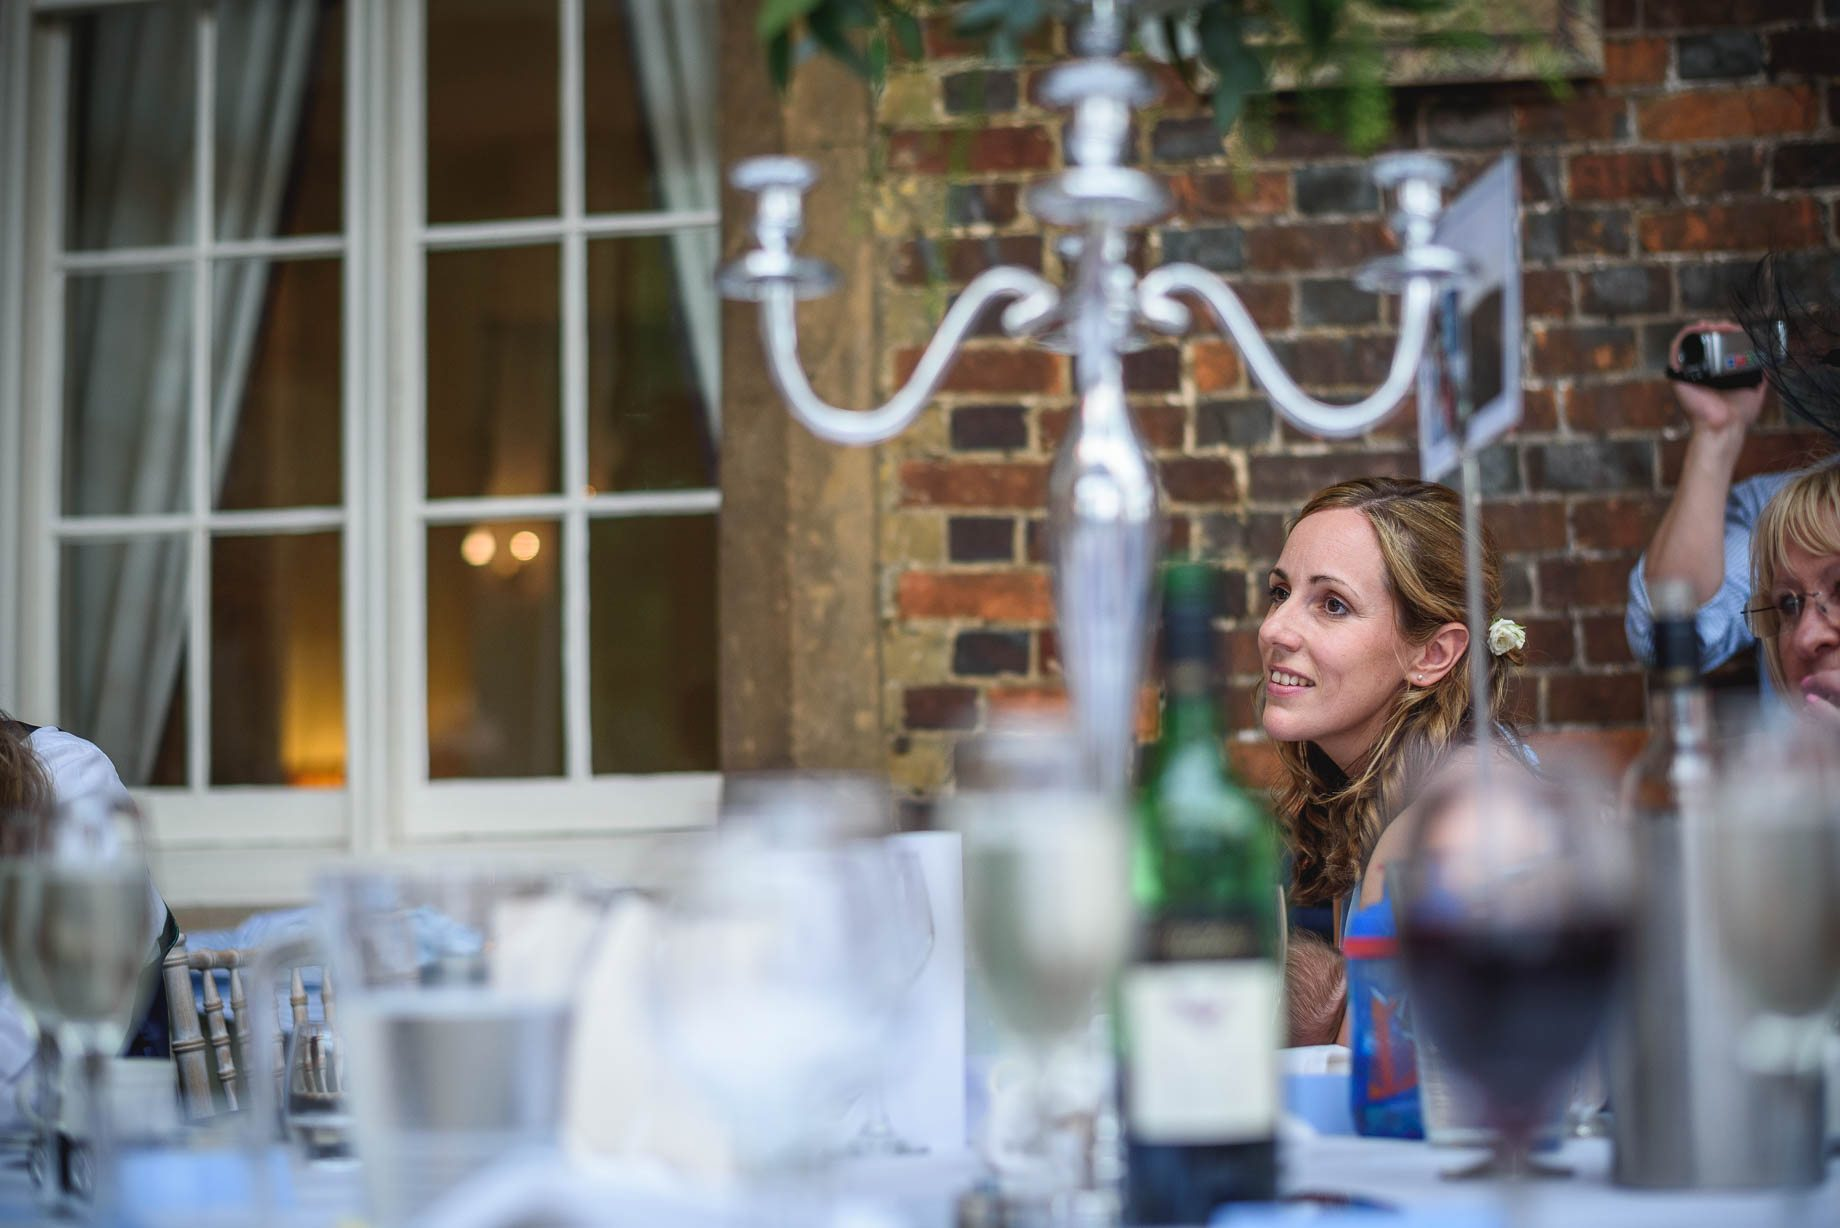 Hertfordshire wedding photography - Sarah and Stephen by Guy Collier Photography (119 of 161)